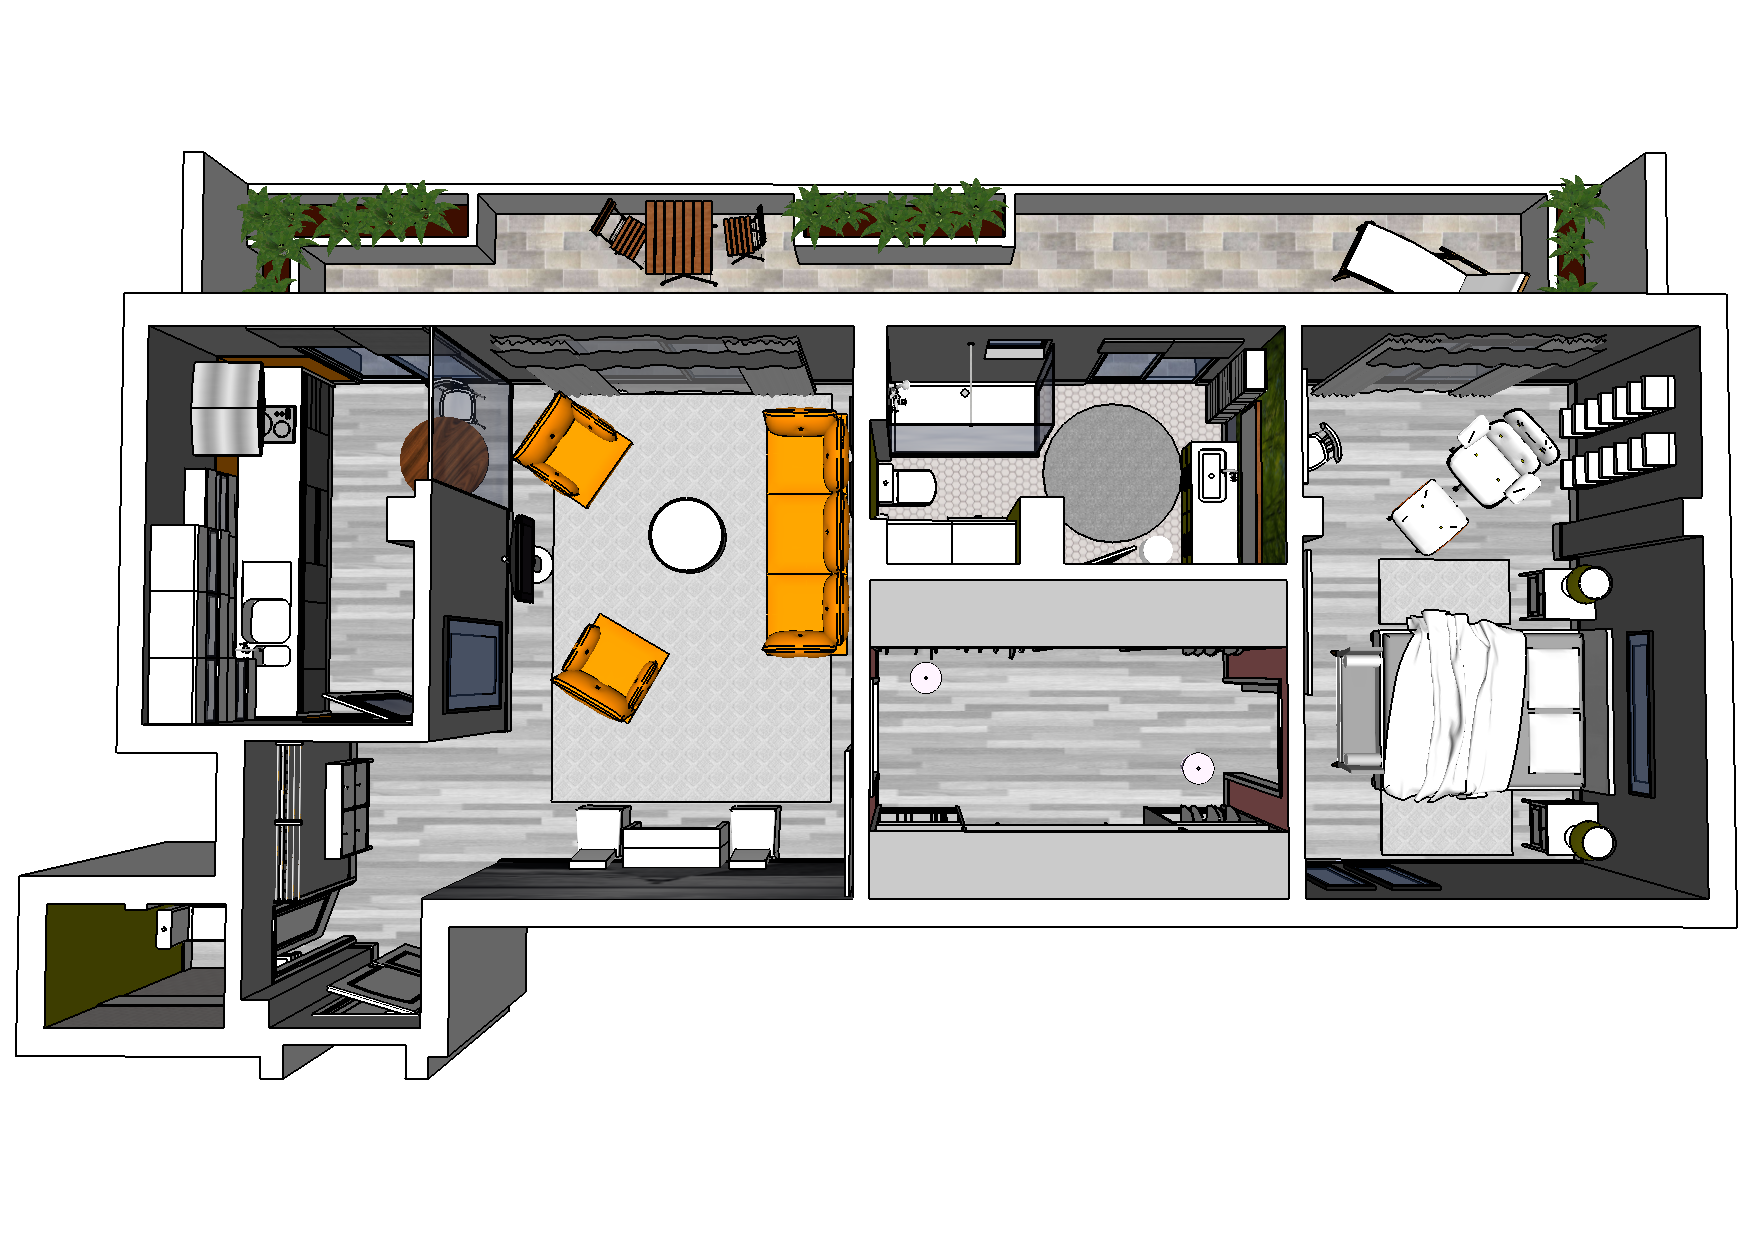 Bachelor apartment 3d floor plan for Bachelor pad house plans